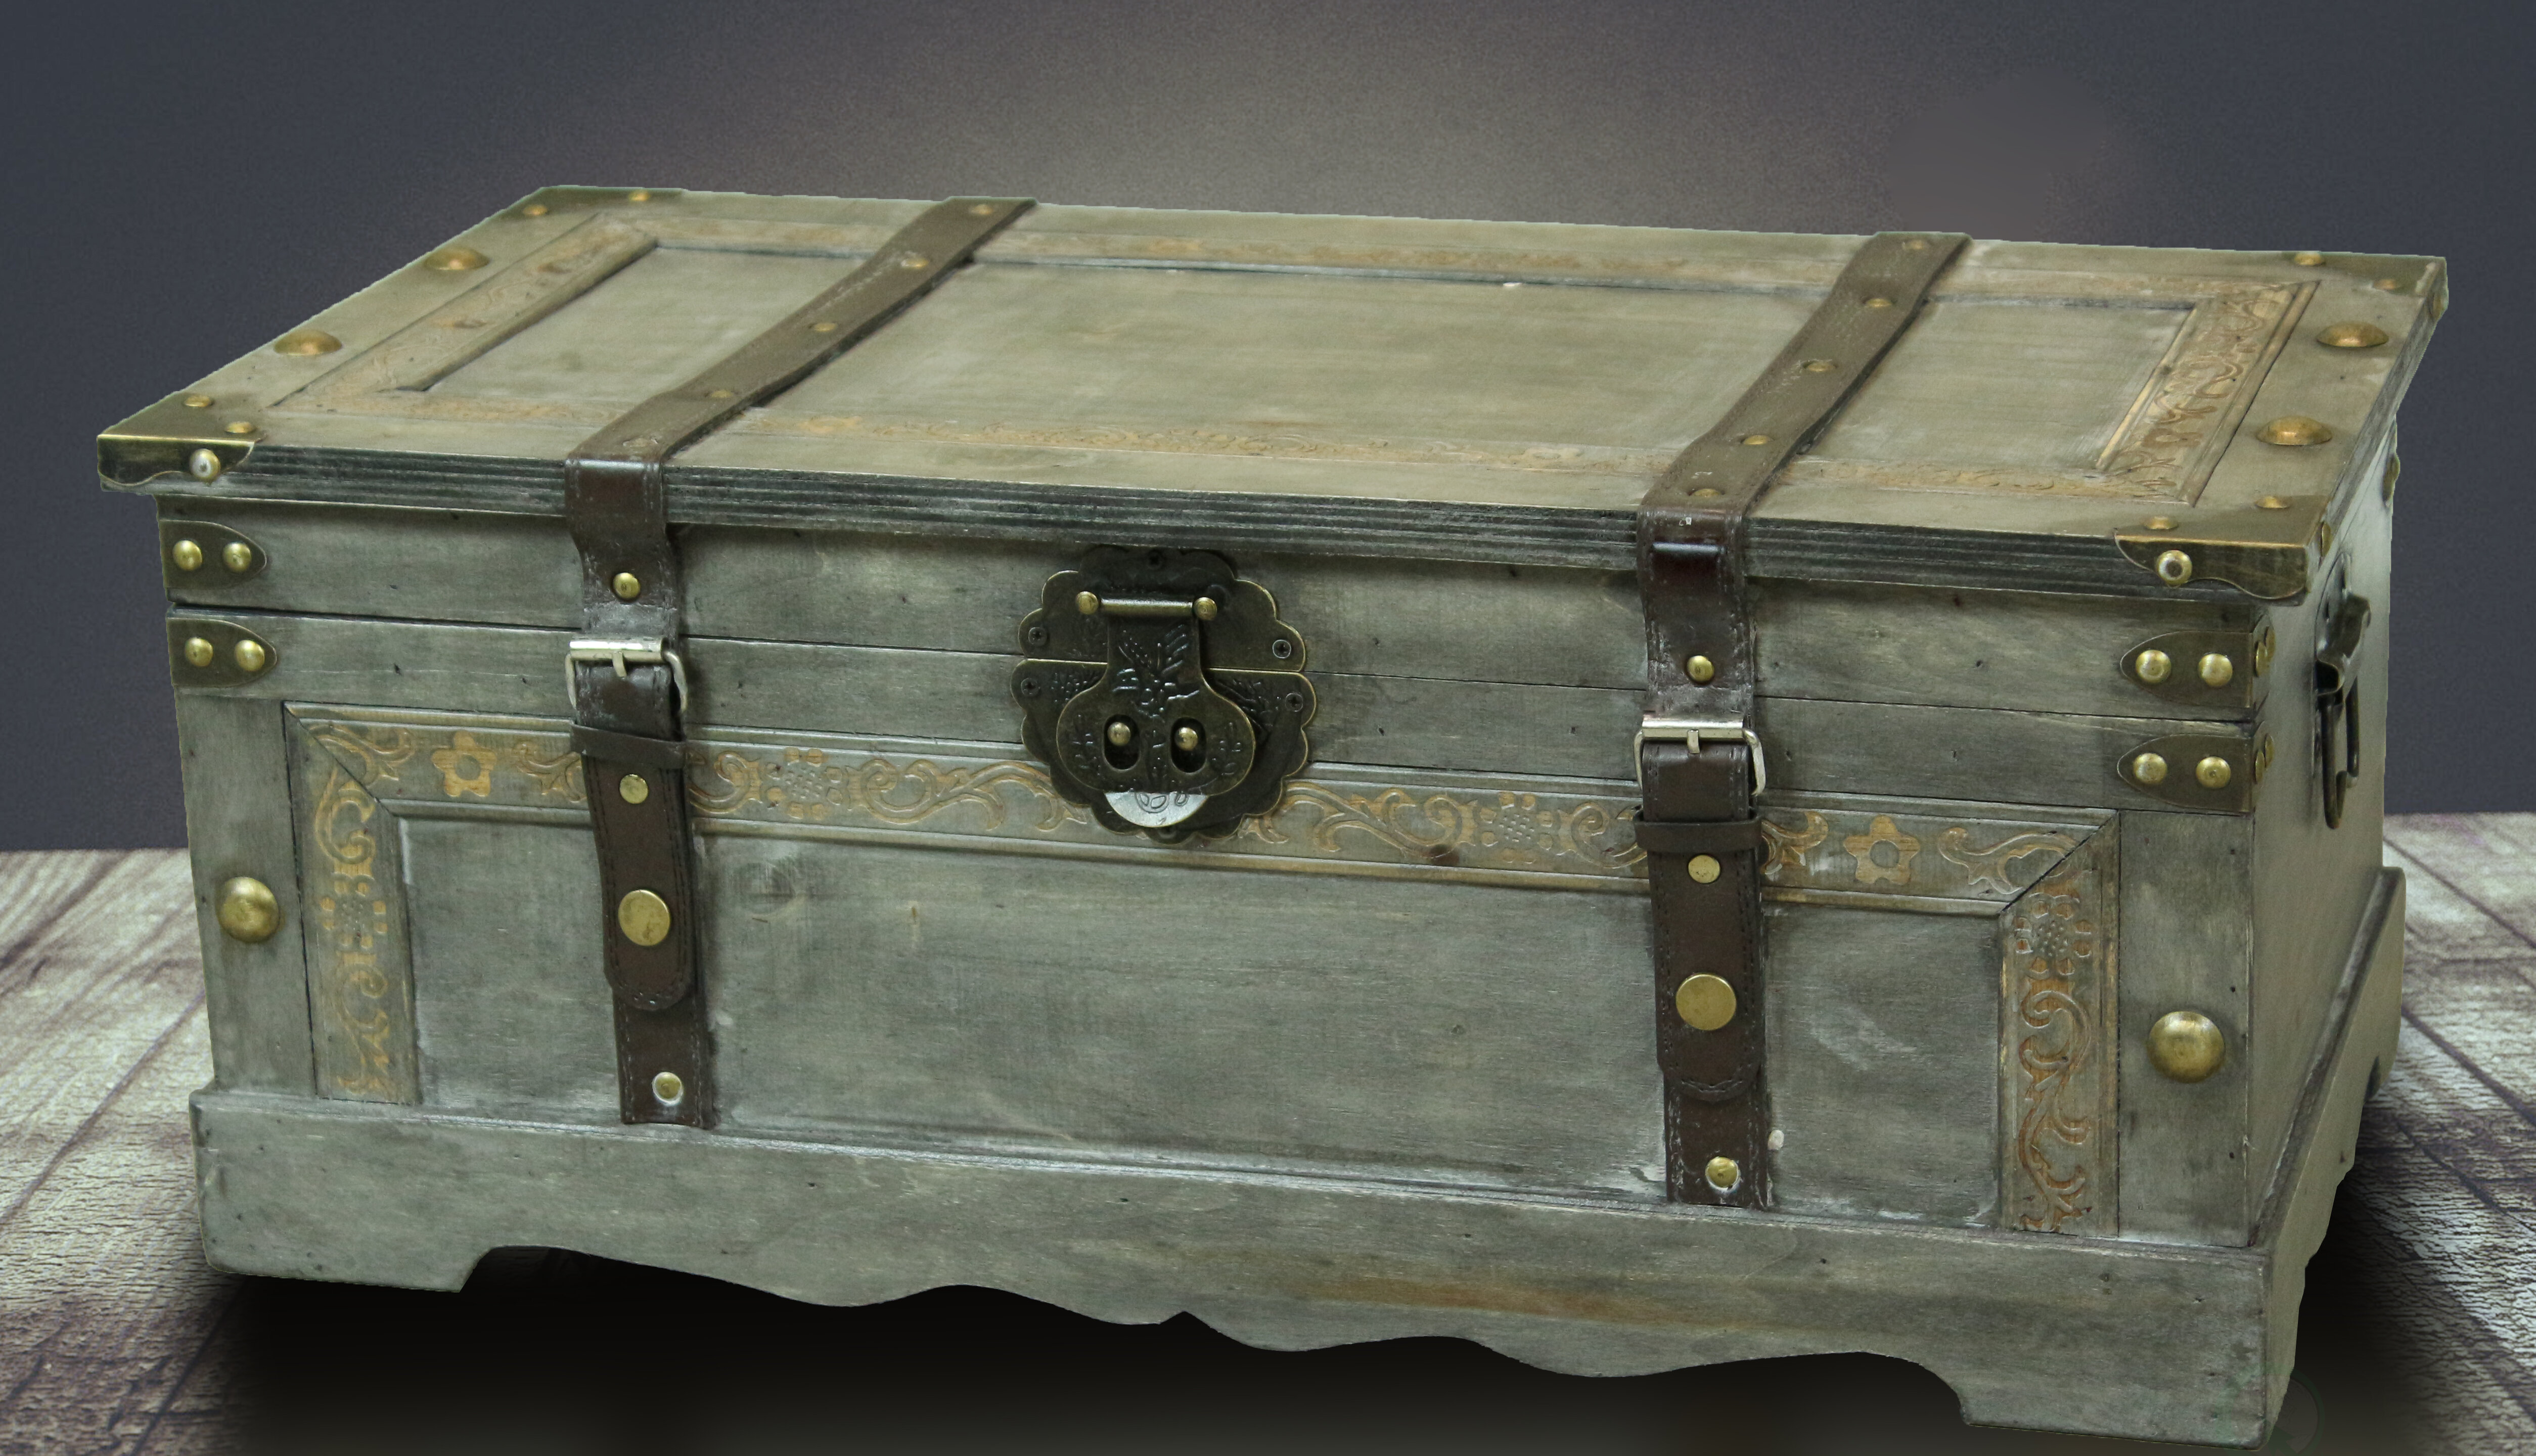 Vintage wooden Trunk Chest Rustic Industrial Coffee table Toy Box Storage